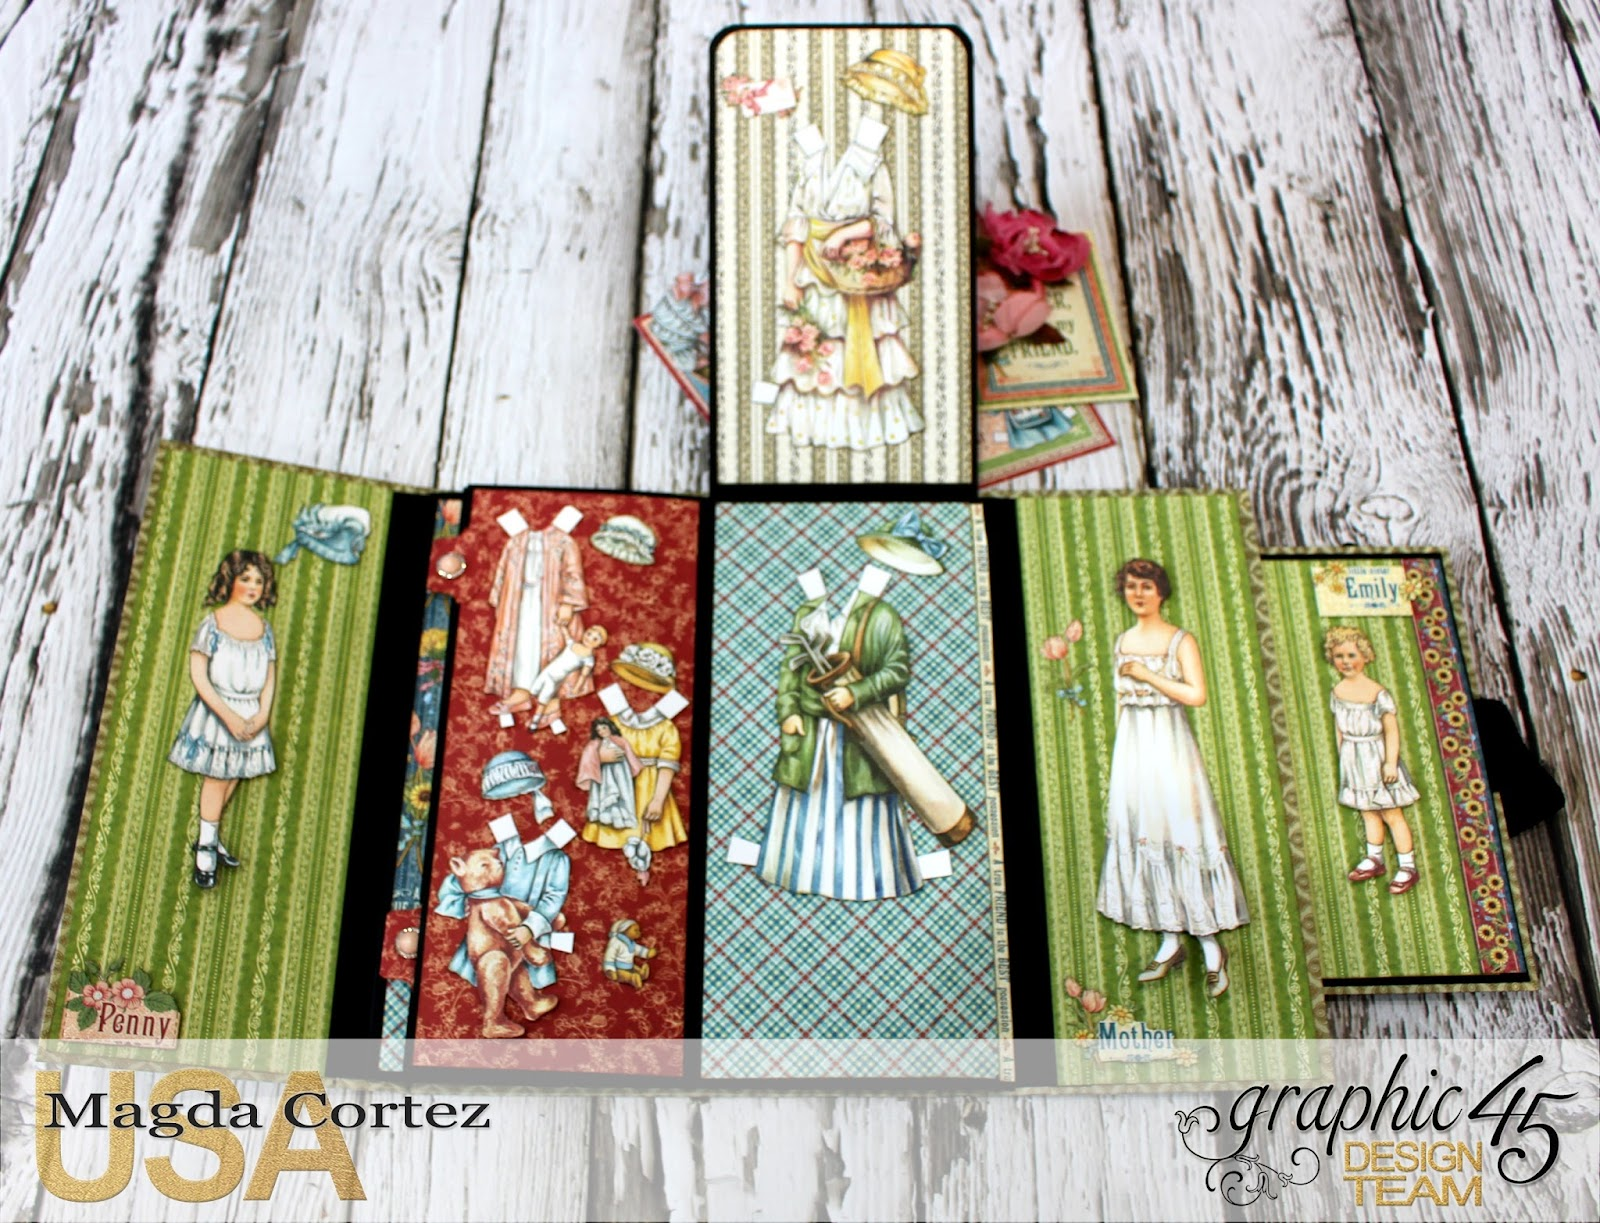 Penny's Paper Doll Family Book, Penny's Paper Doll Family, By Magda Cortez, Product of Graphic45, Photo 04 of 12.jpg